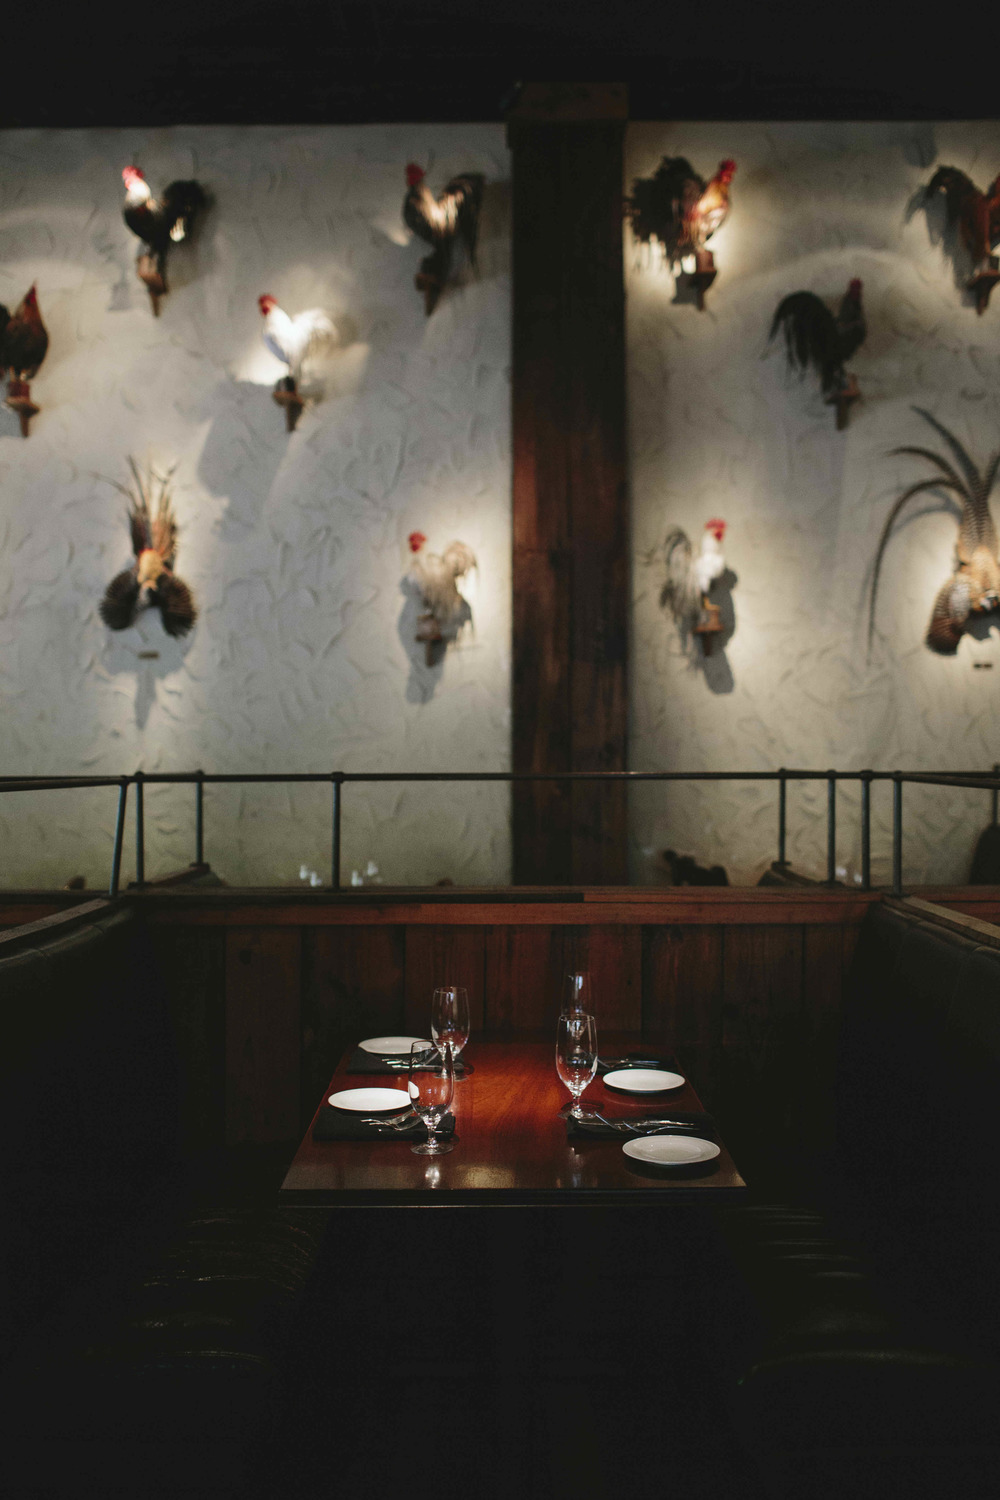 AshevilleFolk Summer City Guide: Charlotte NC with Megan Gielow. Rooster's Wood-Fired Kitchen. Farm-to-table cuisine and wine bar. The potatoes au gratin are the best I've ever had.